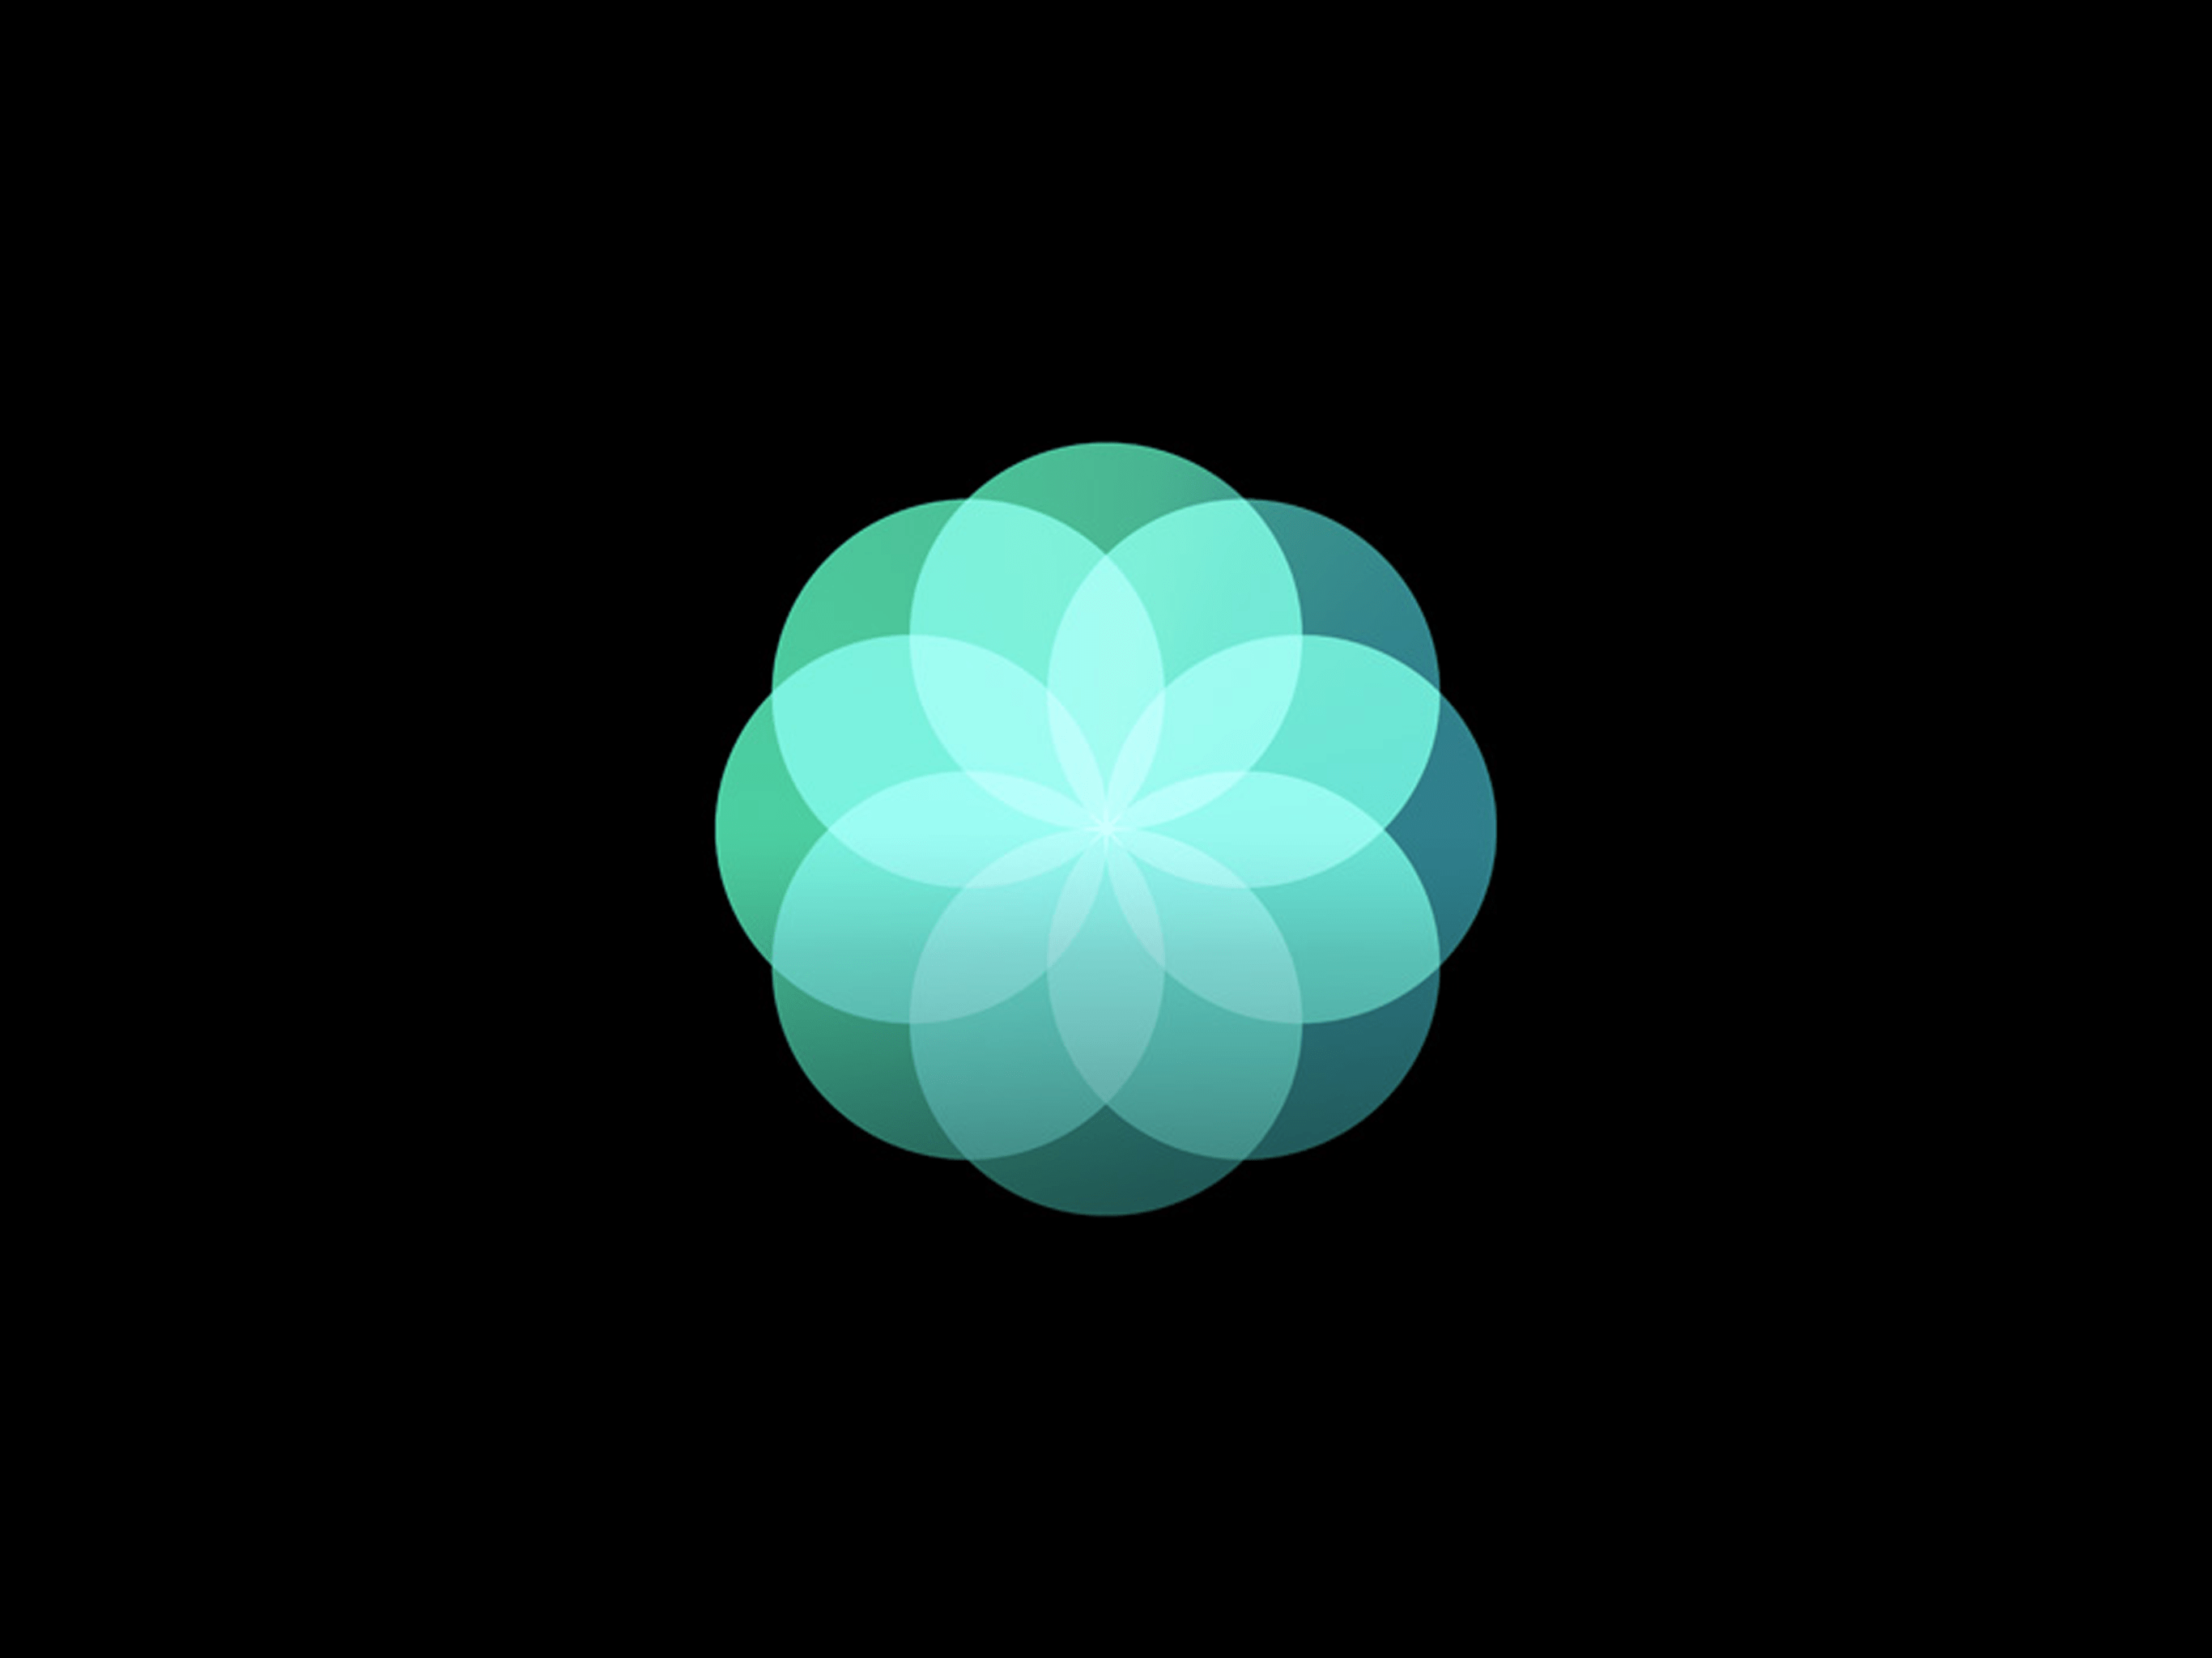 Mac Makeup Wallpaper Iphone Wallpapers Inspired By The Watchos 3 Breathe App